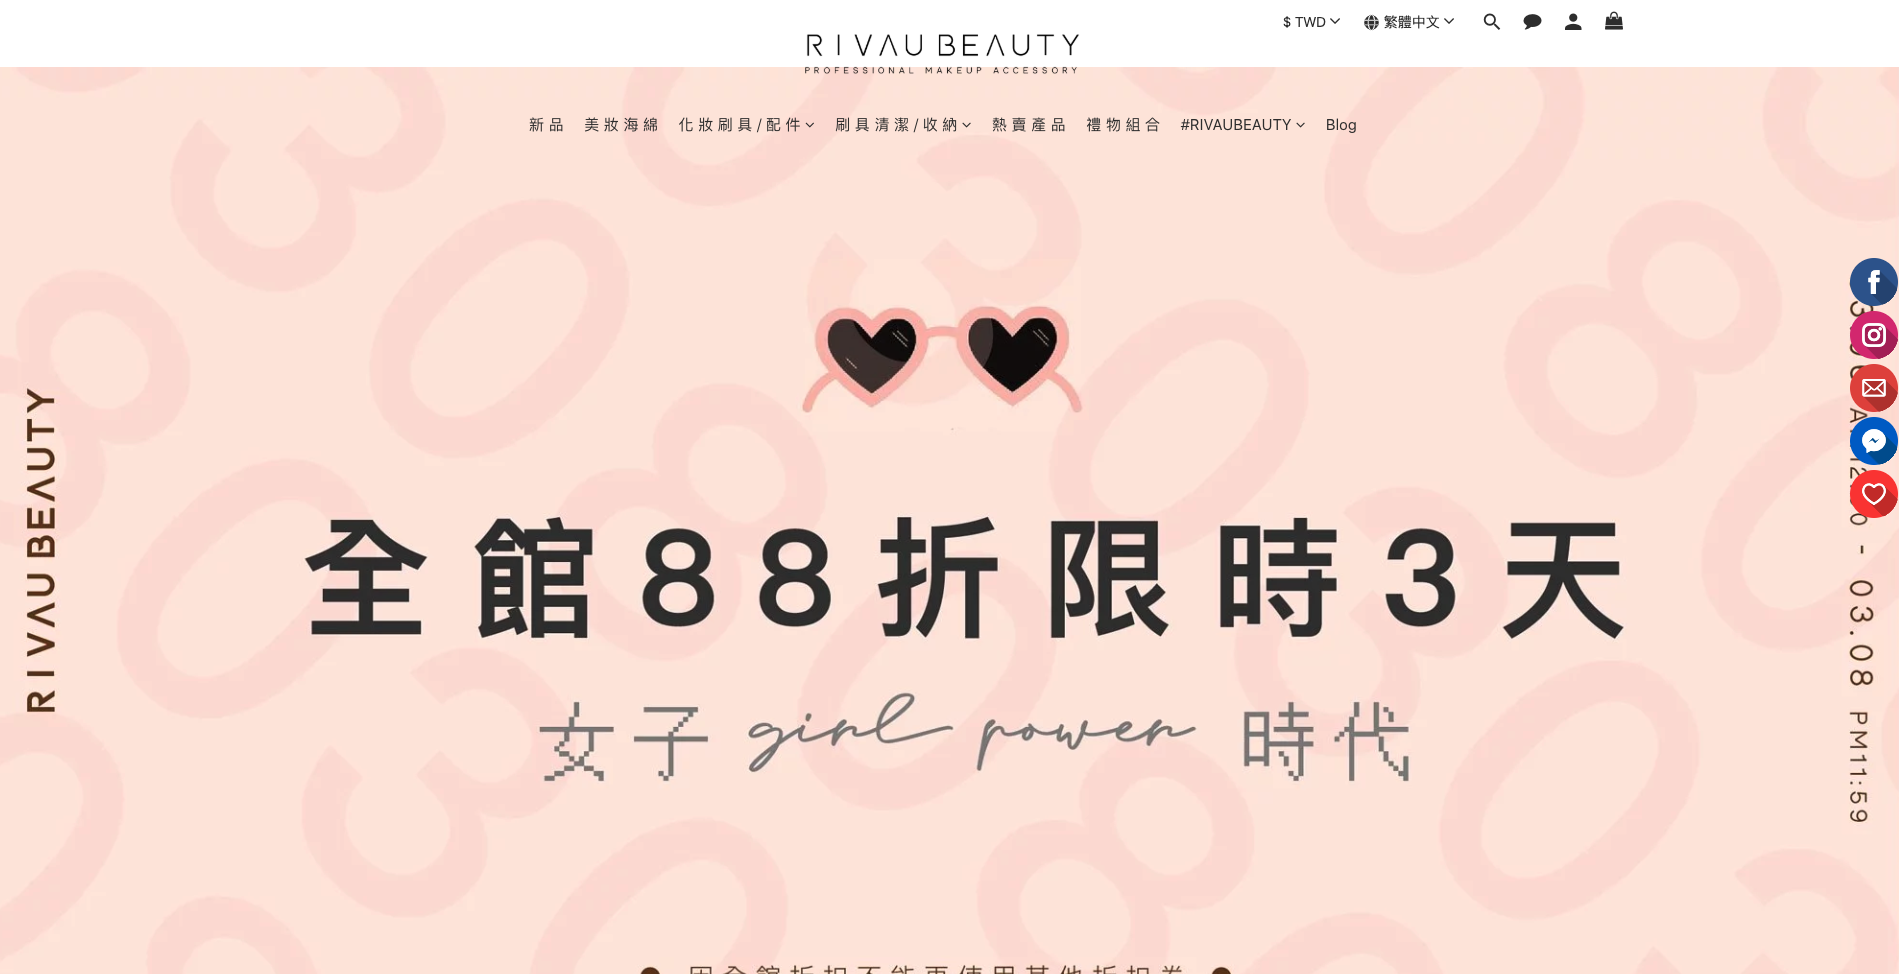 RIVAU BEAUTY 官網女子時代活動